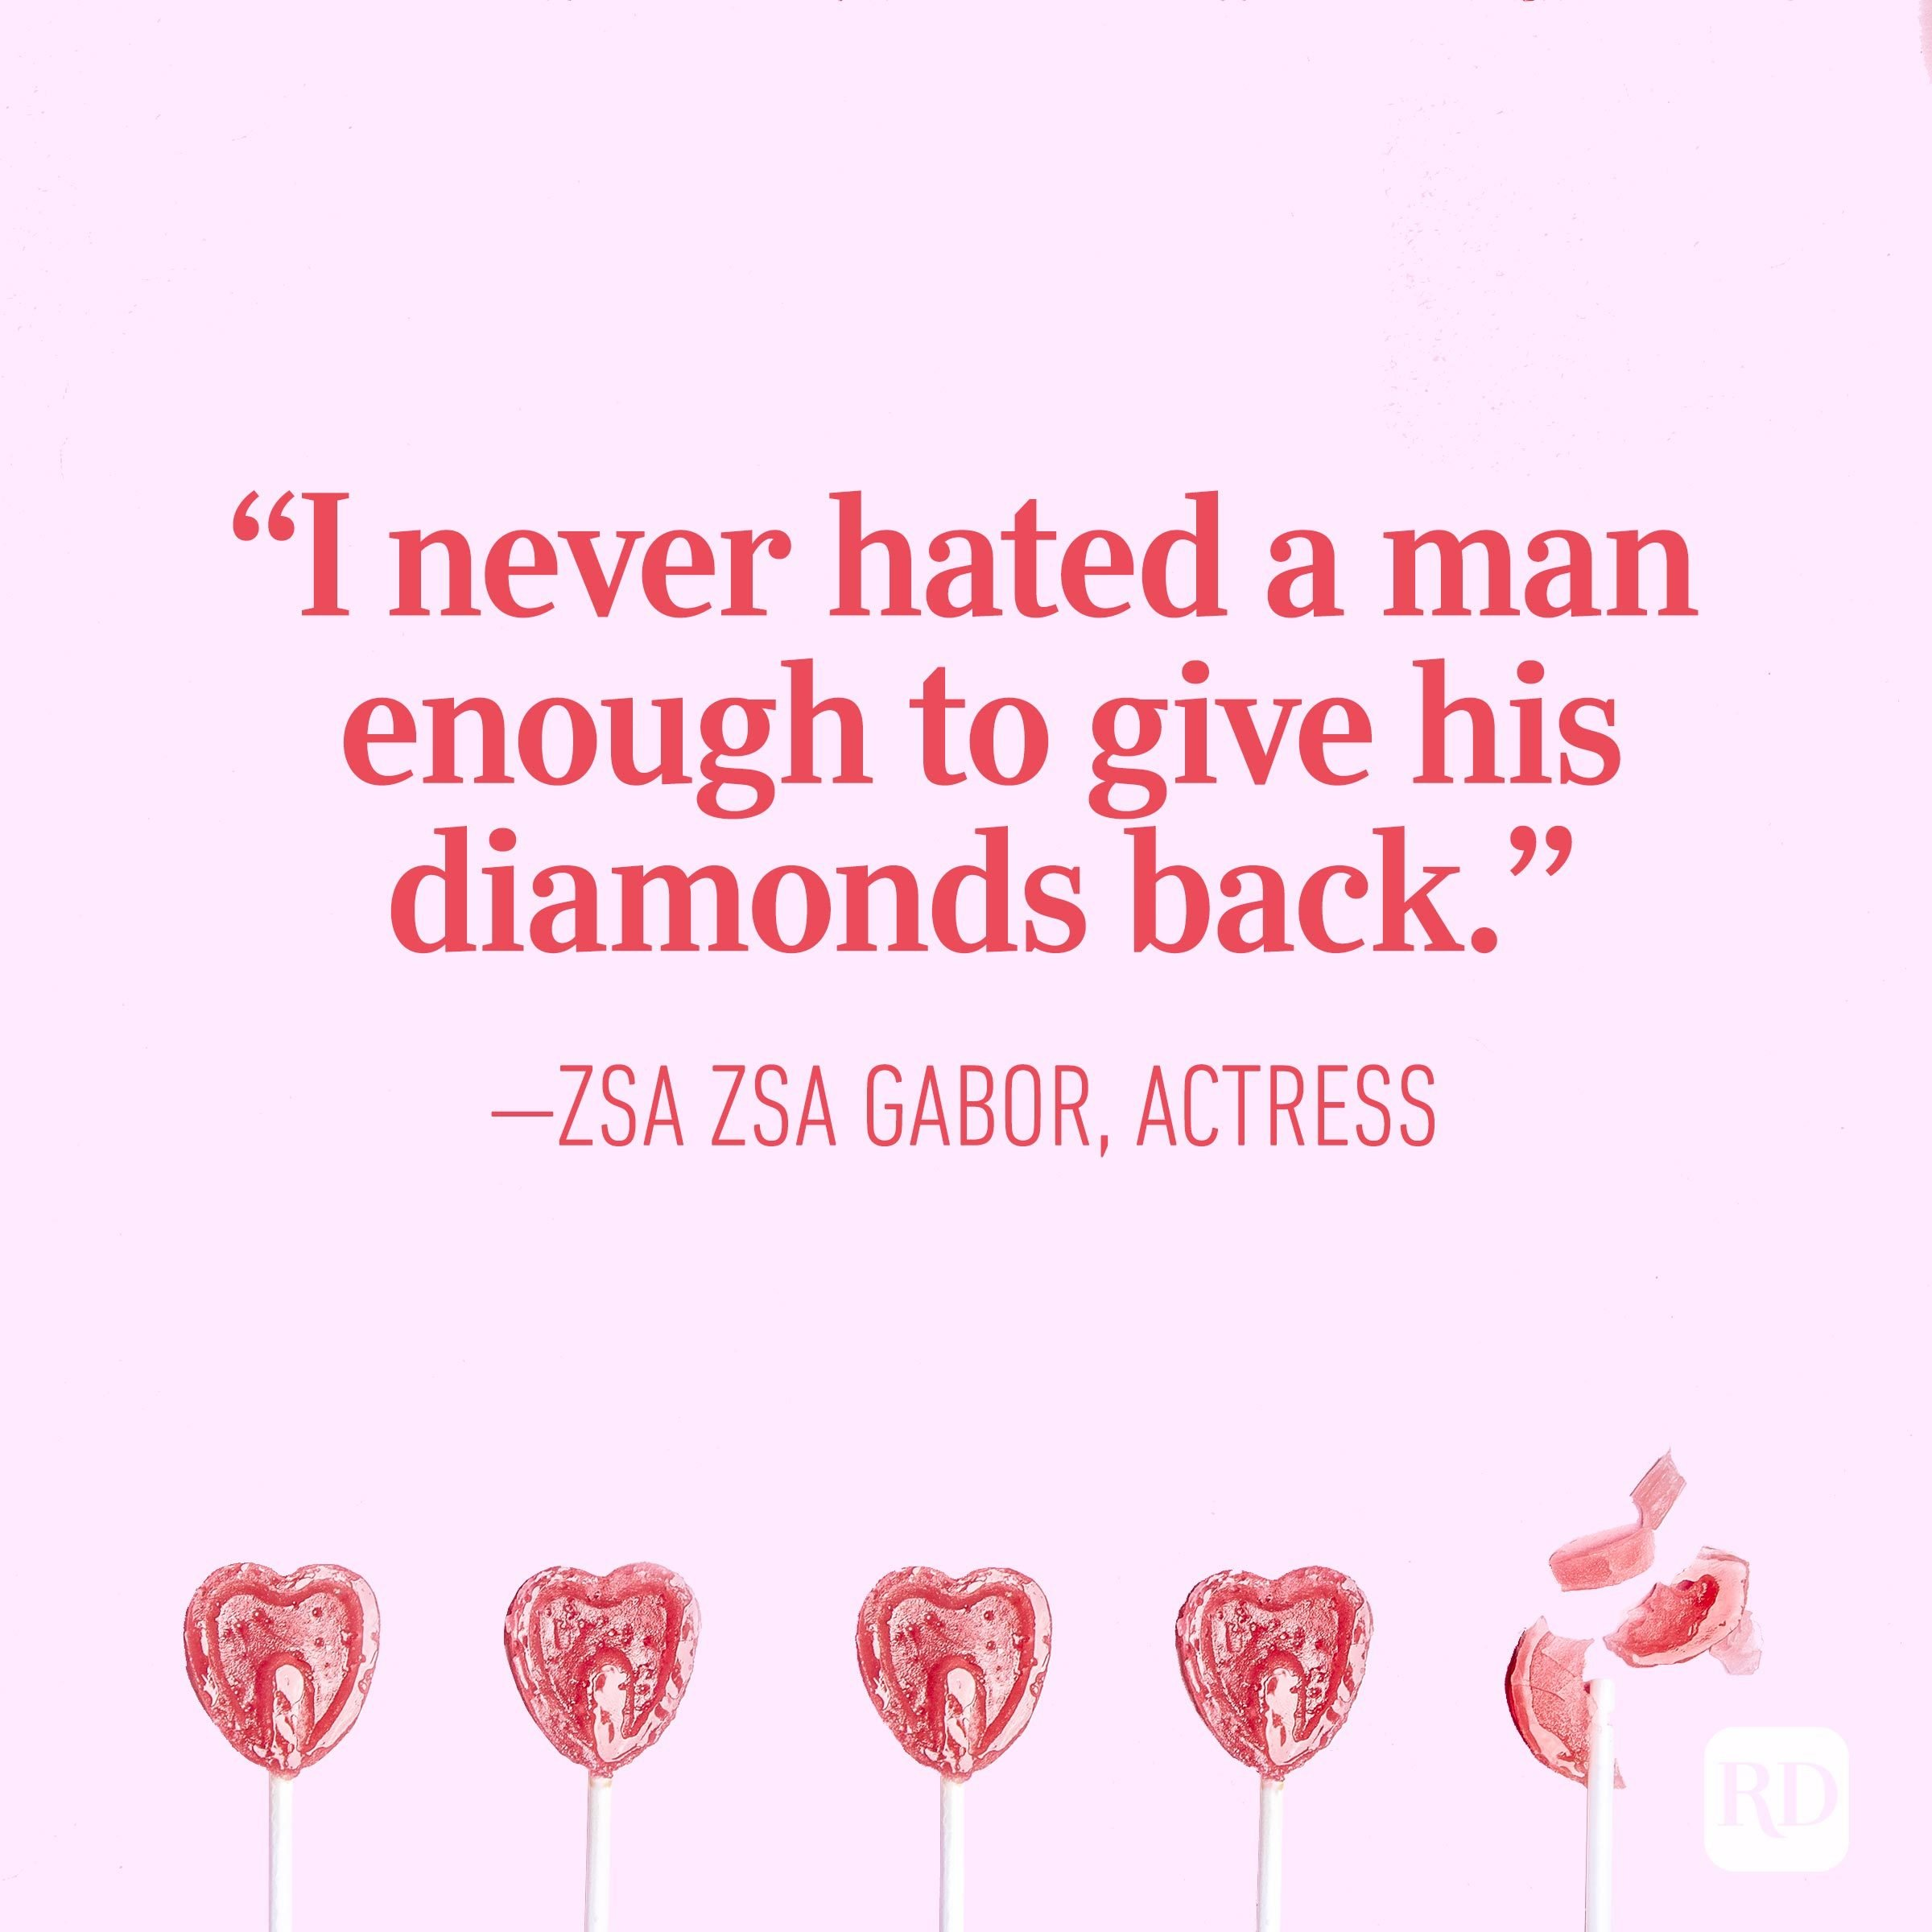 """I never hated a man enough to give his diamonds back."" — Zsa Zsa Gabor, actress"